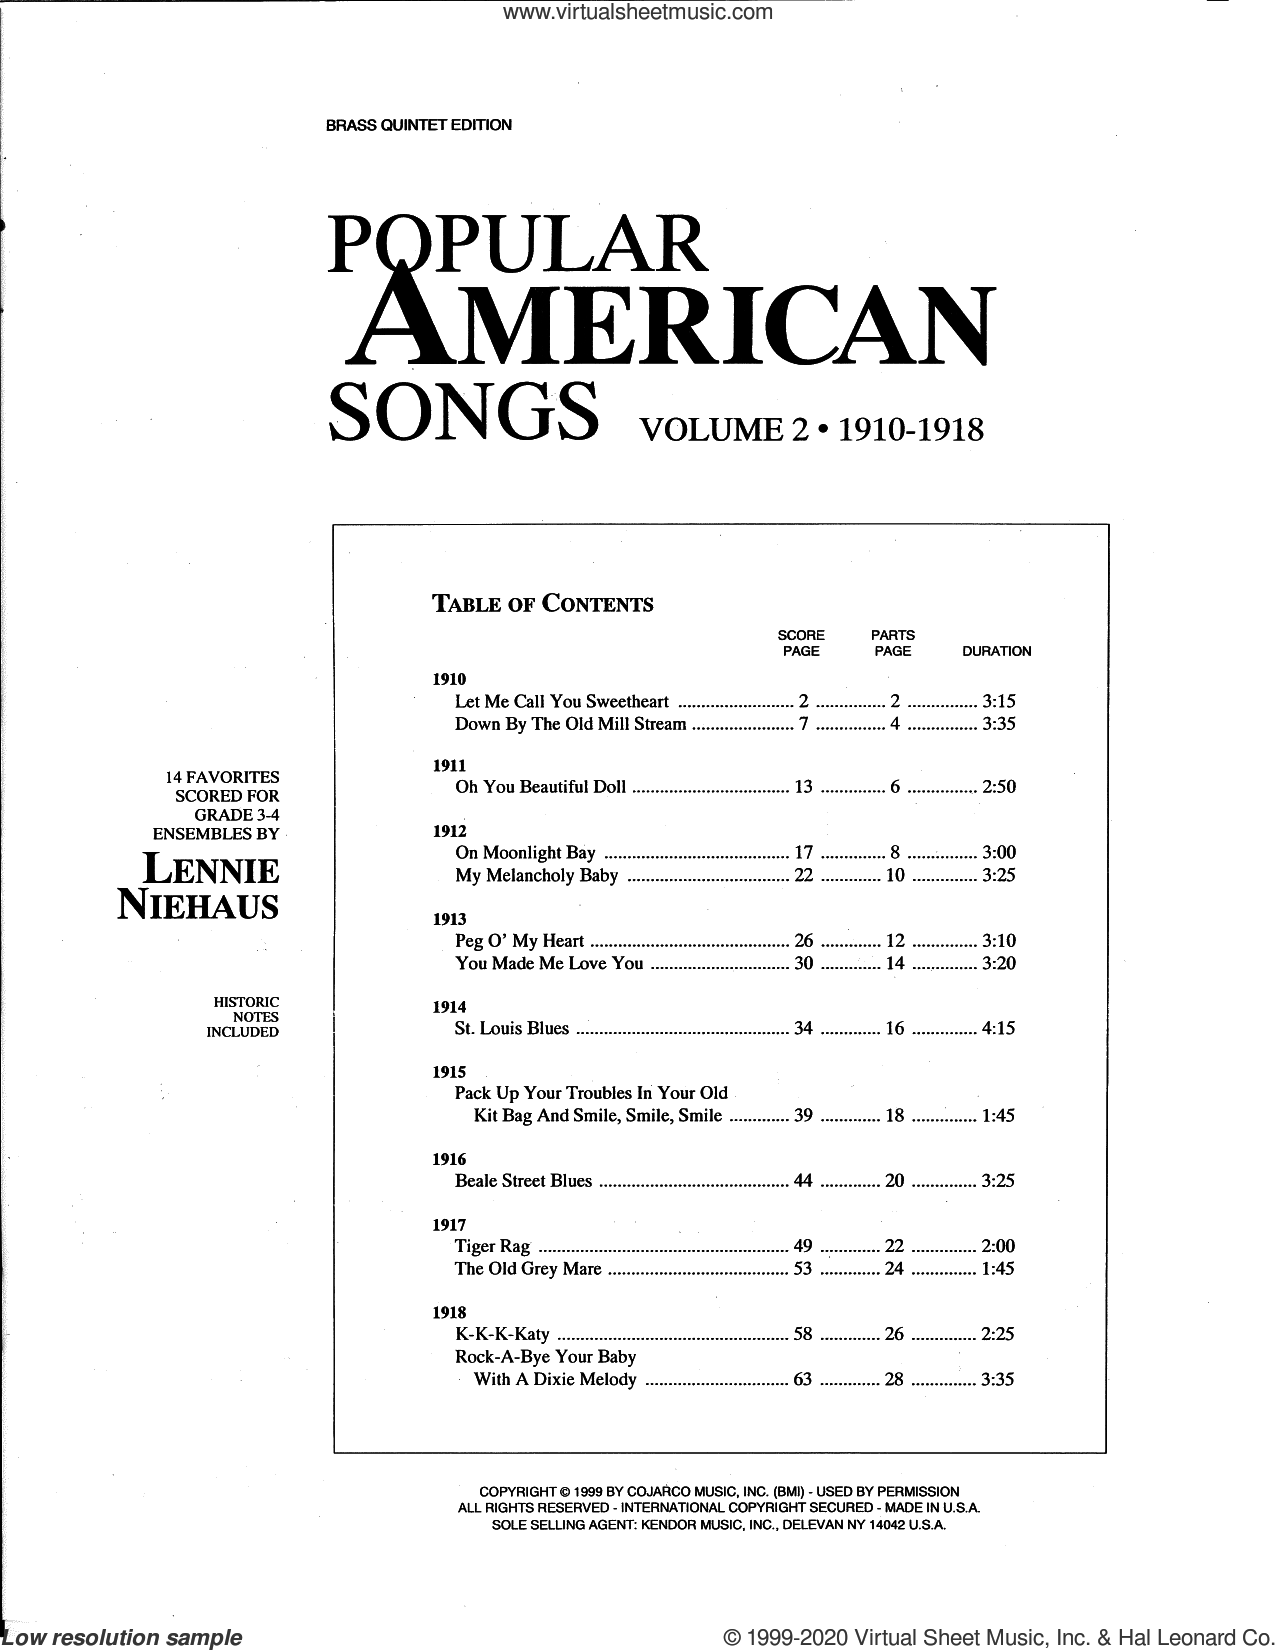 Popular American Songs, Volume 2 - 1st Trumpet sheet music for brass quintet by Lennie Niehaus and Miscellaneous, intermediate skill level